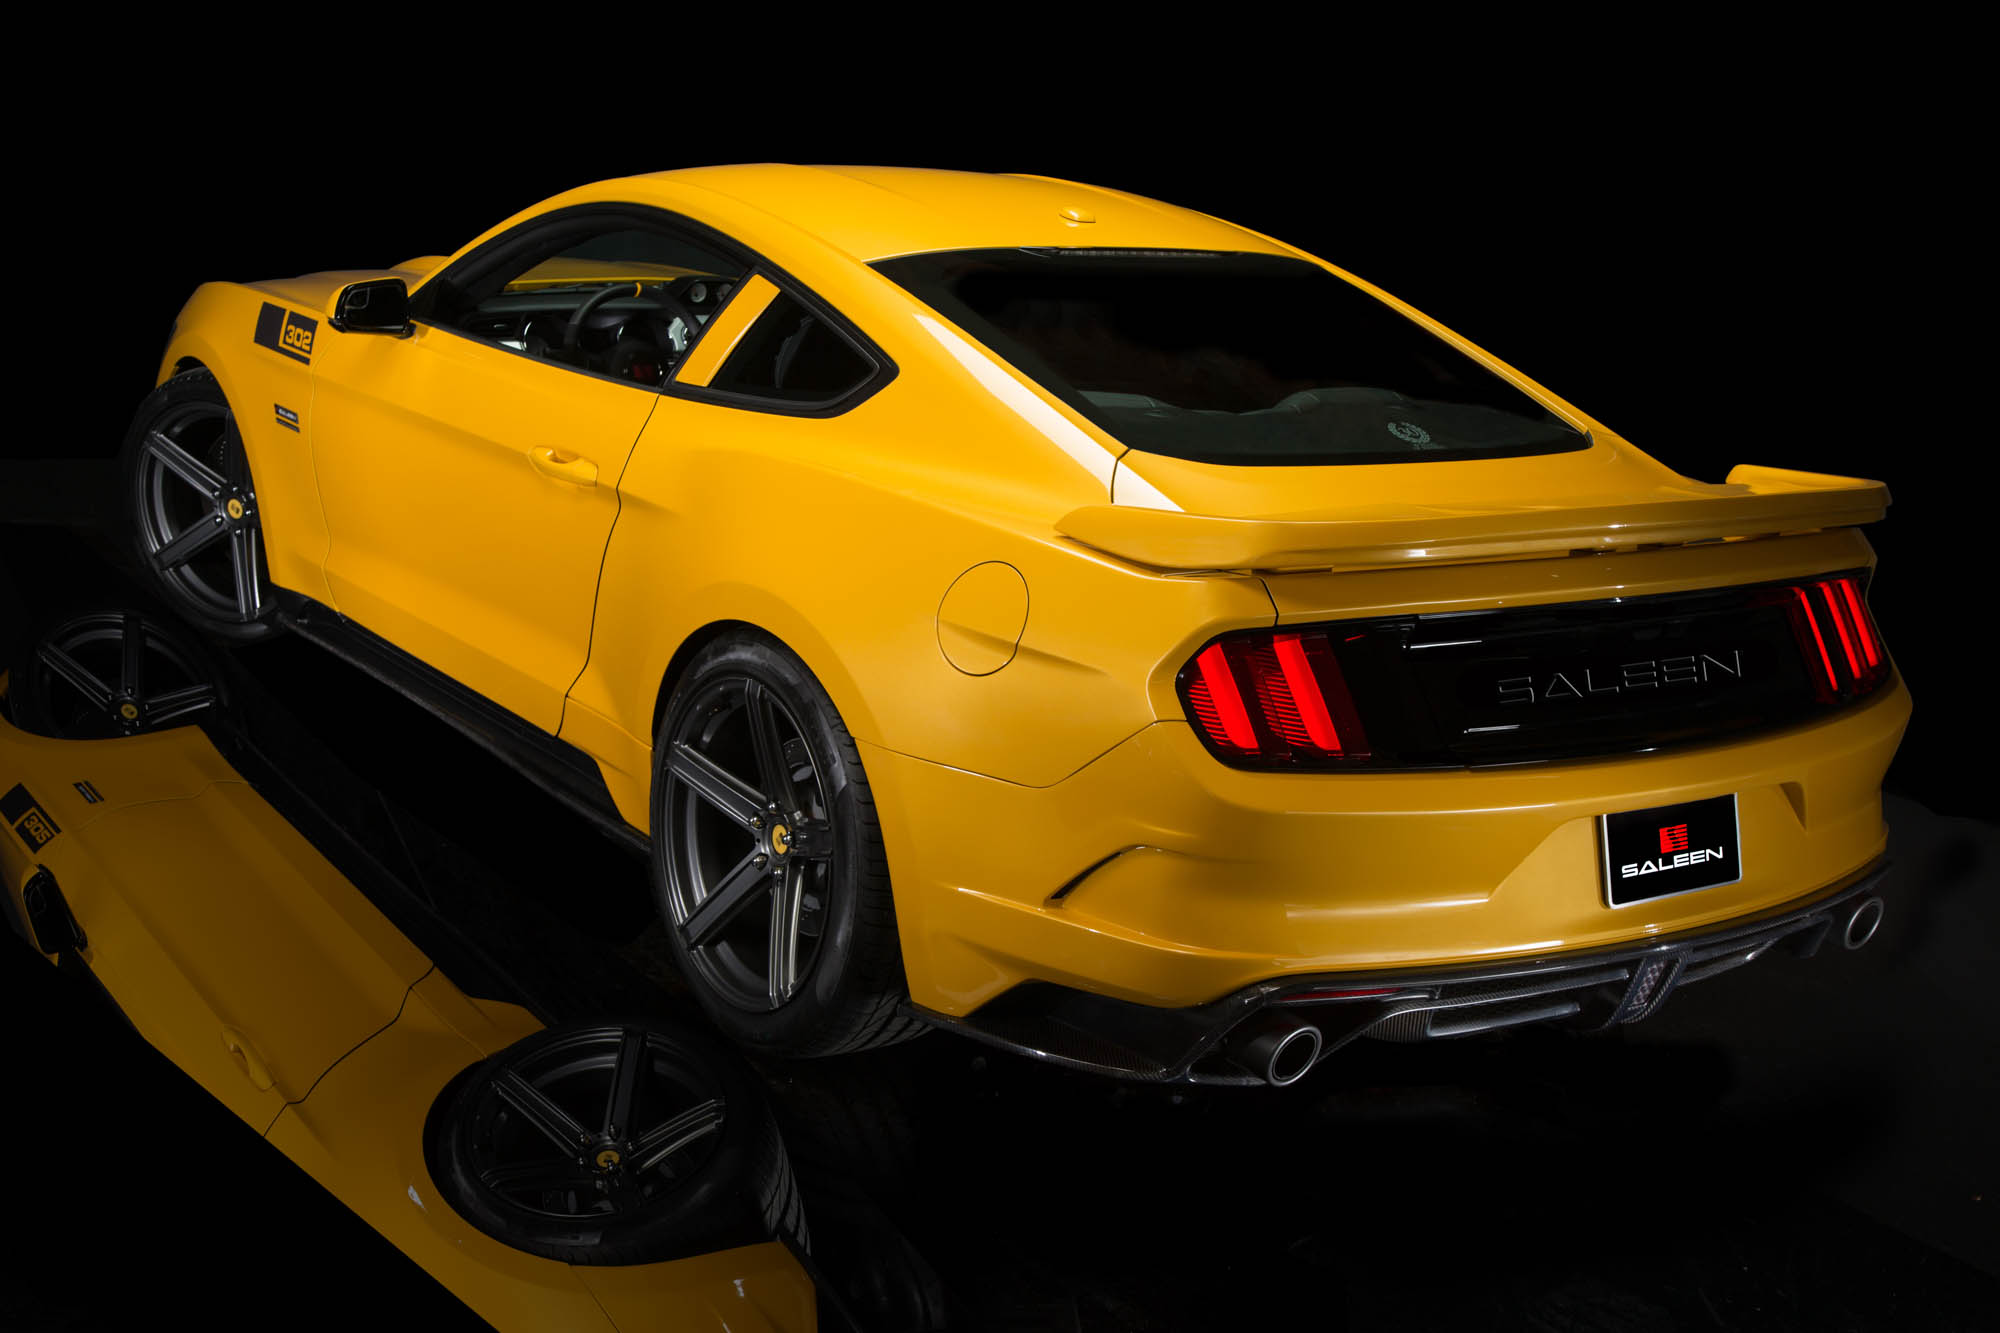 2015 saleen ford mustang s302 black label muscle cars news and pictures. Black Bedroom Furniture Sets. Home Design Ideas